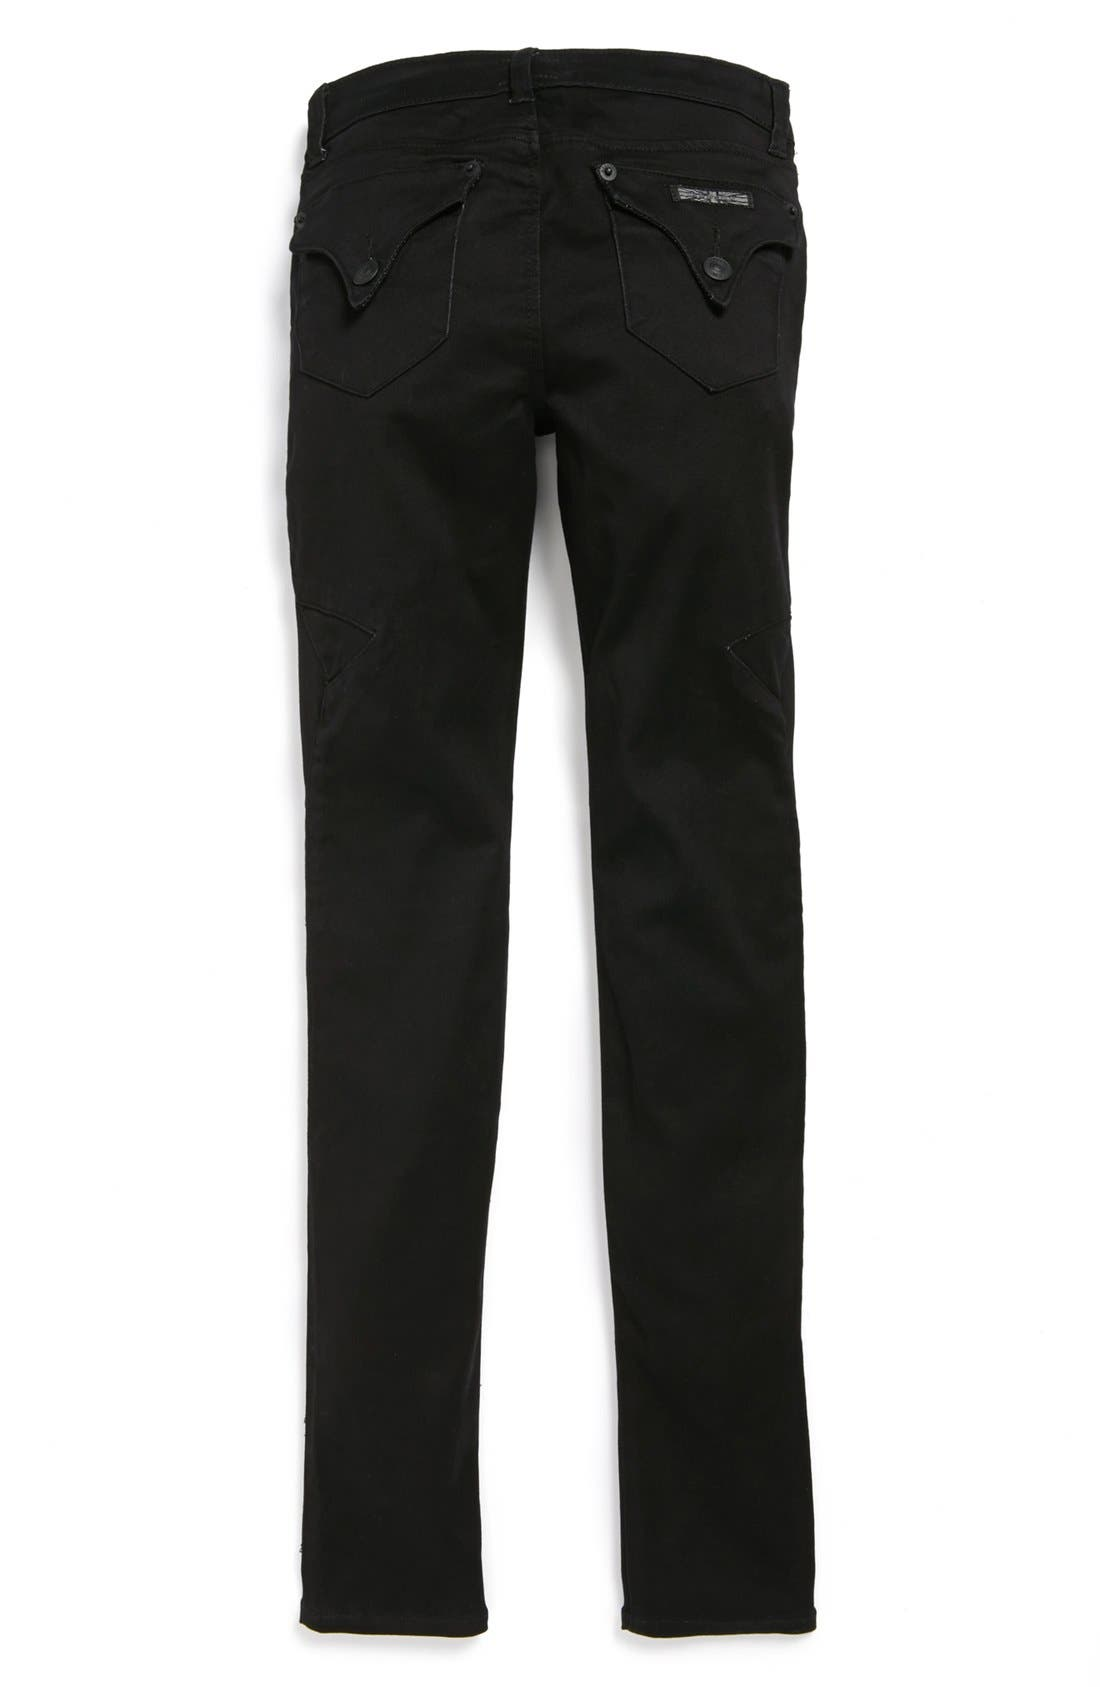 Alternate Image 1 Selected - Hudson Kids 'Moto' Skinny Jeans (Big Girls)